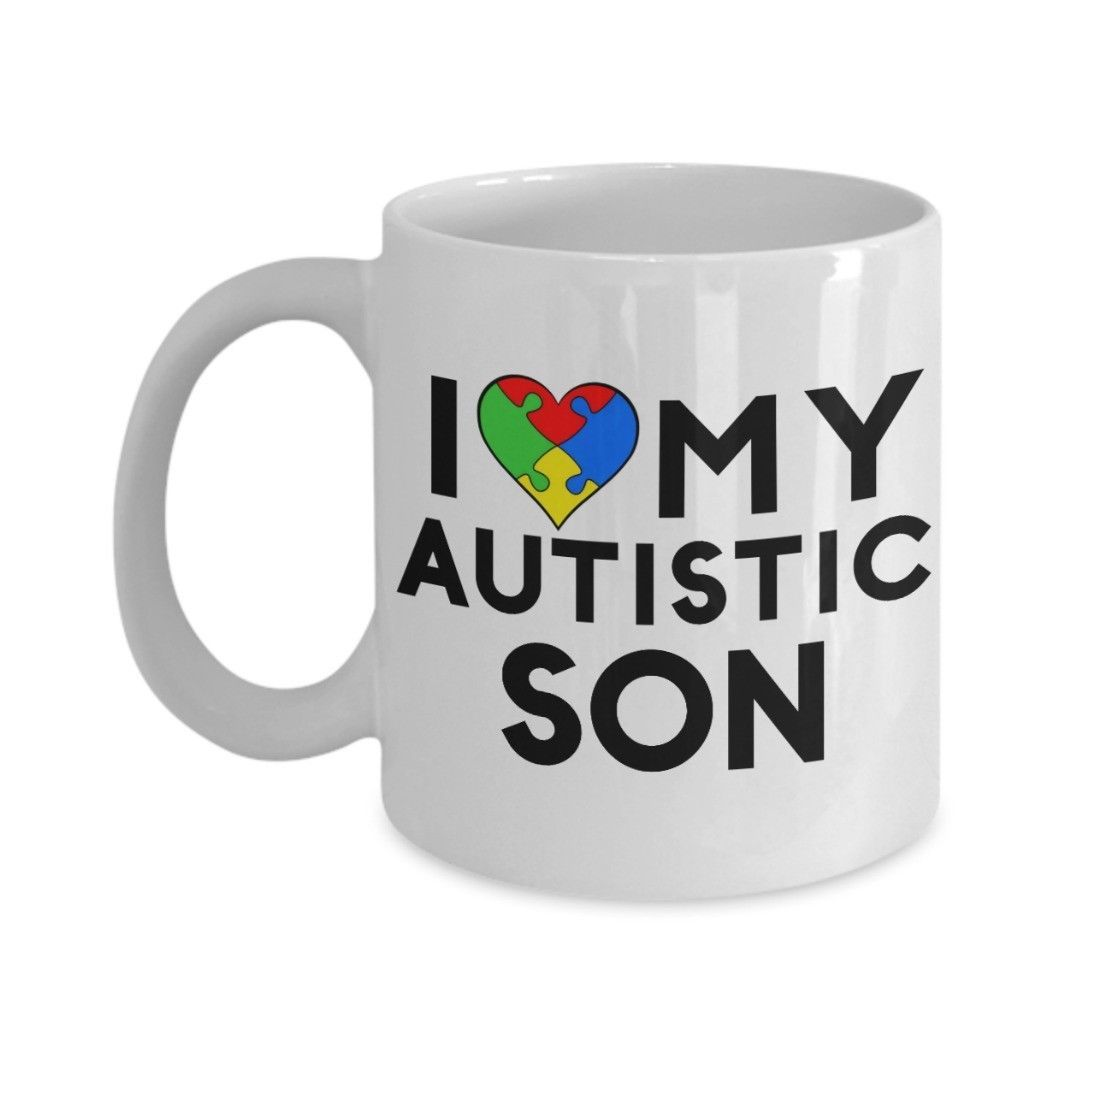 Autism Mom Coffee Mug I Love My Autistic Son Cup Jigsaw Heart Gift Idea Ceramic